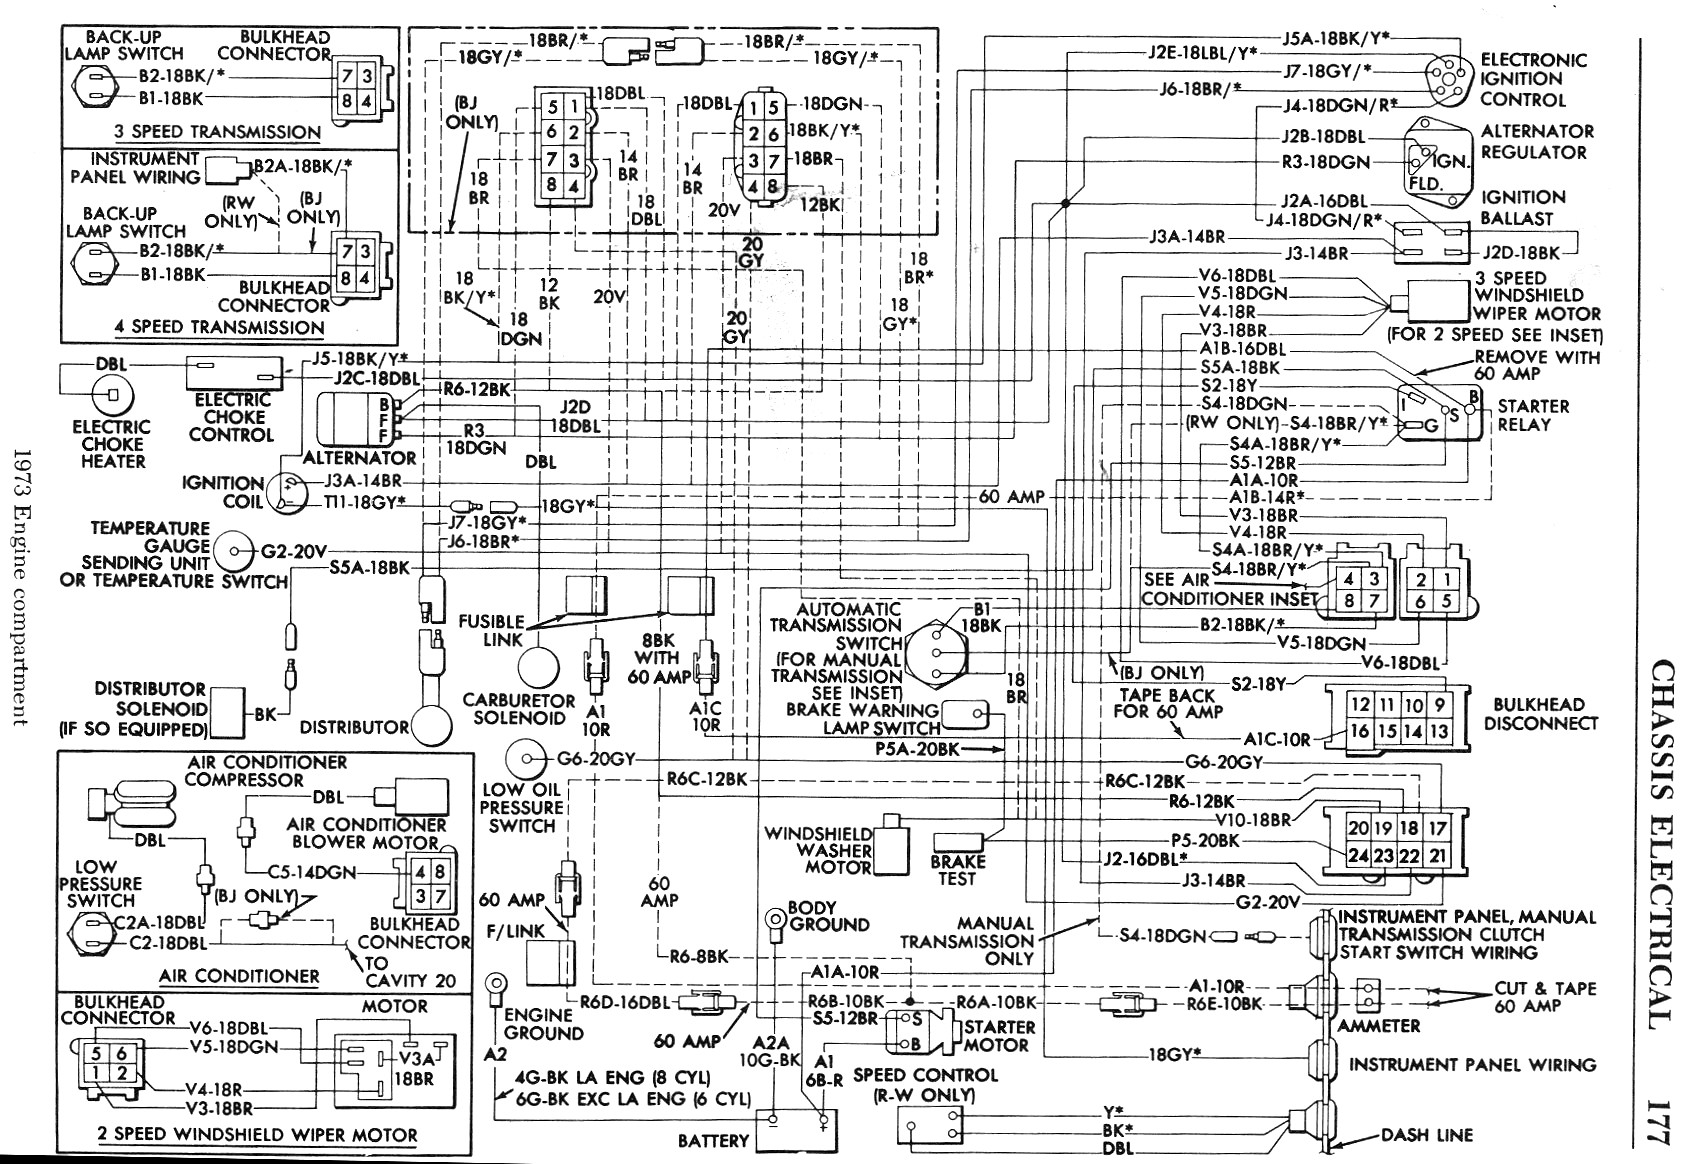 5098823 73B BodyEngineCompartmentWiringDiagram mopar wiring diagram powerflex 755 wiring diagrams \u2022 free wiring 1974 Dodge Charger SE at crackthecode.co